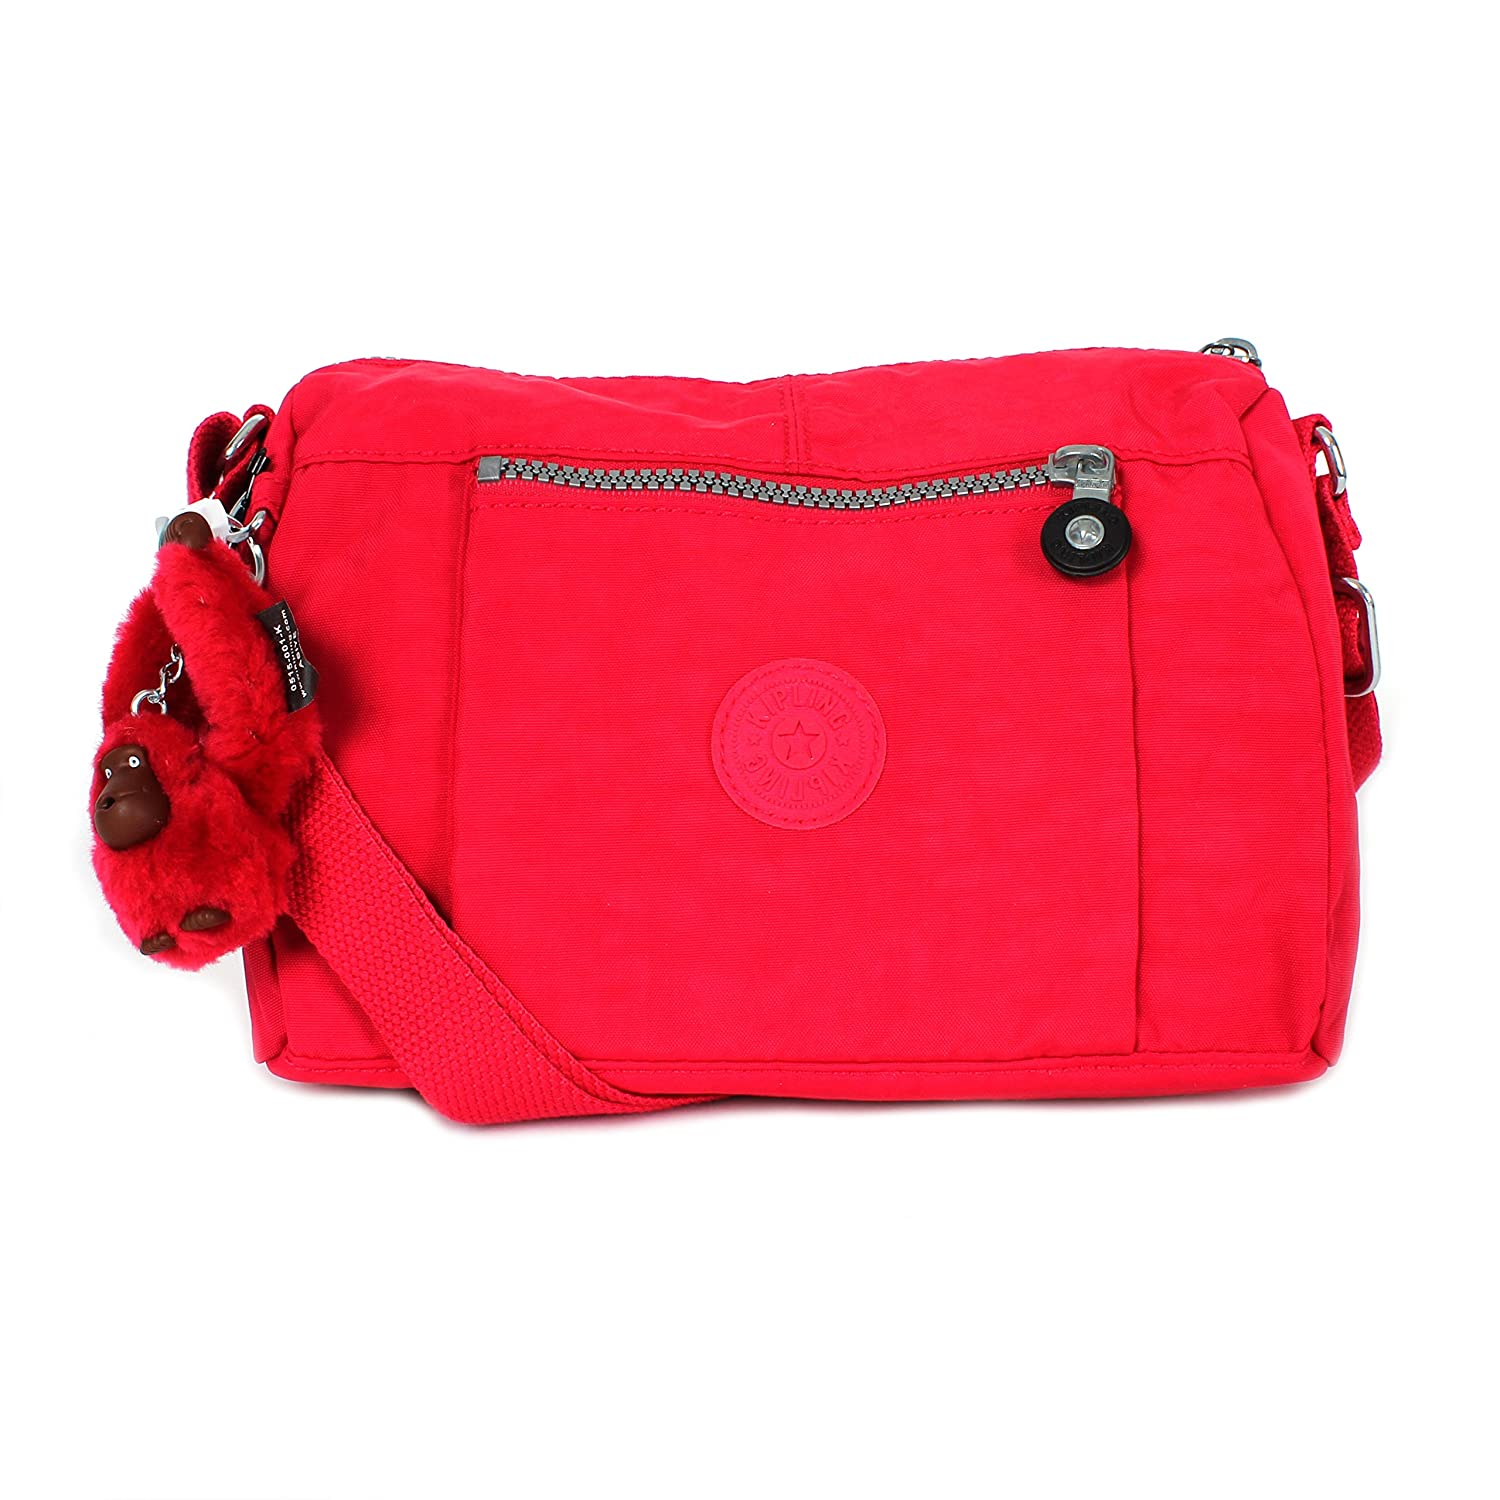 Kipling Wes Messenger Shoulder Bag Flmbyntpnk